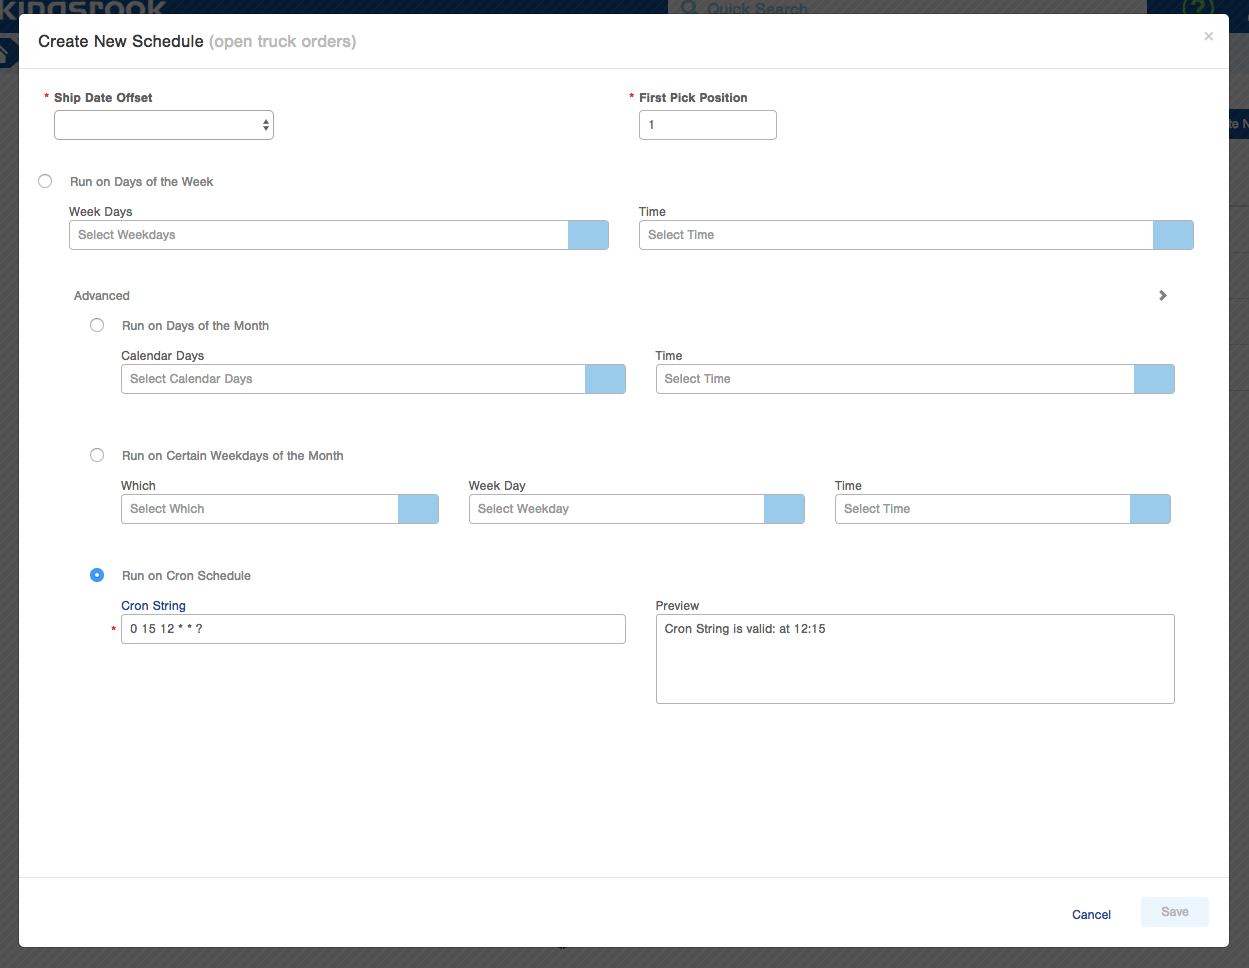 Use Cron Strings to Schedule Subscriptions and Plans